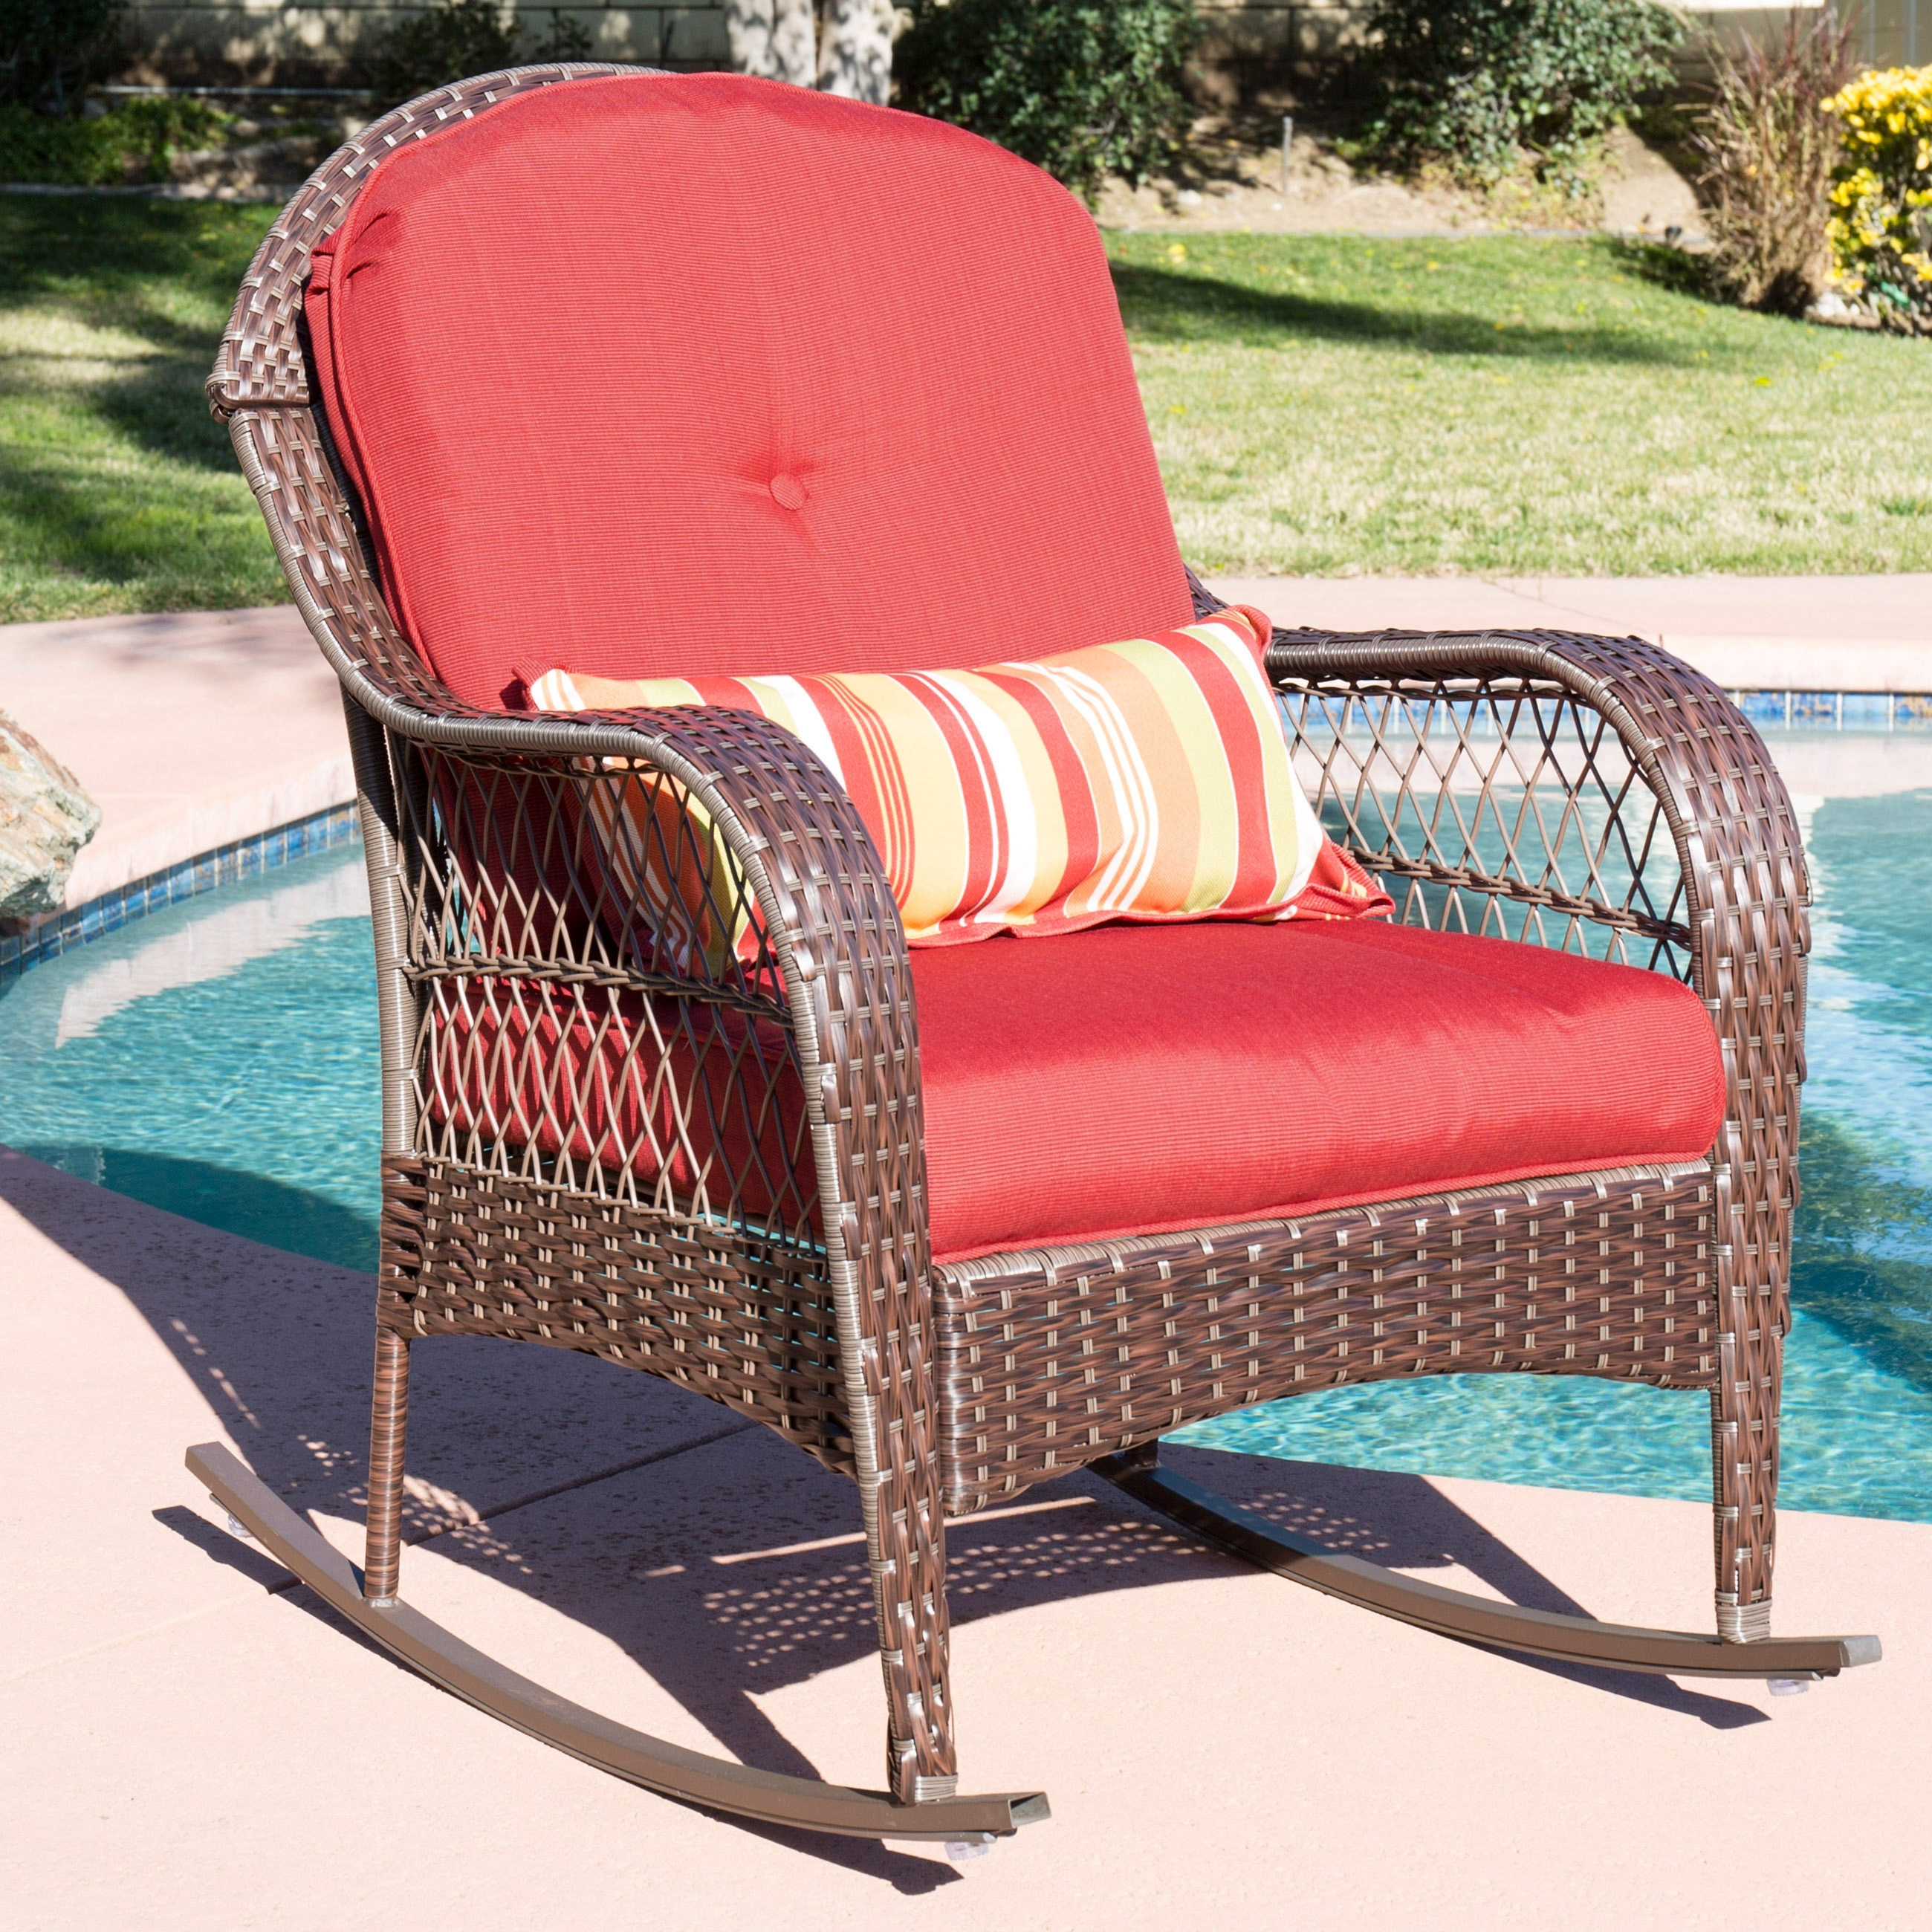 Widely Used All Weather Patio Rocking Chairs Throughout Best Choice Products Wicker Rocking Chair Patio Porch Deck Furniture (View 9 of 15)